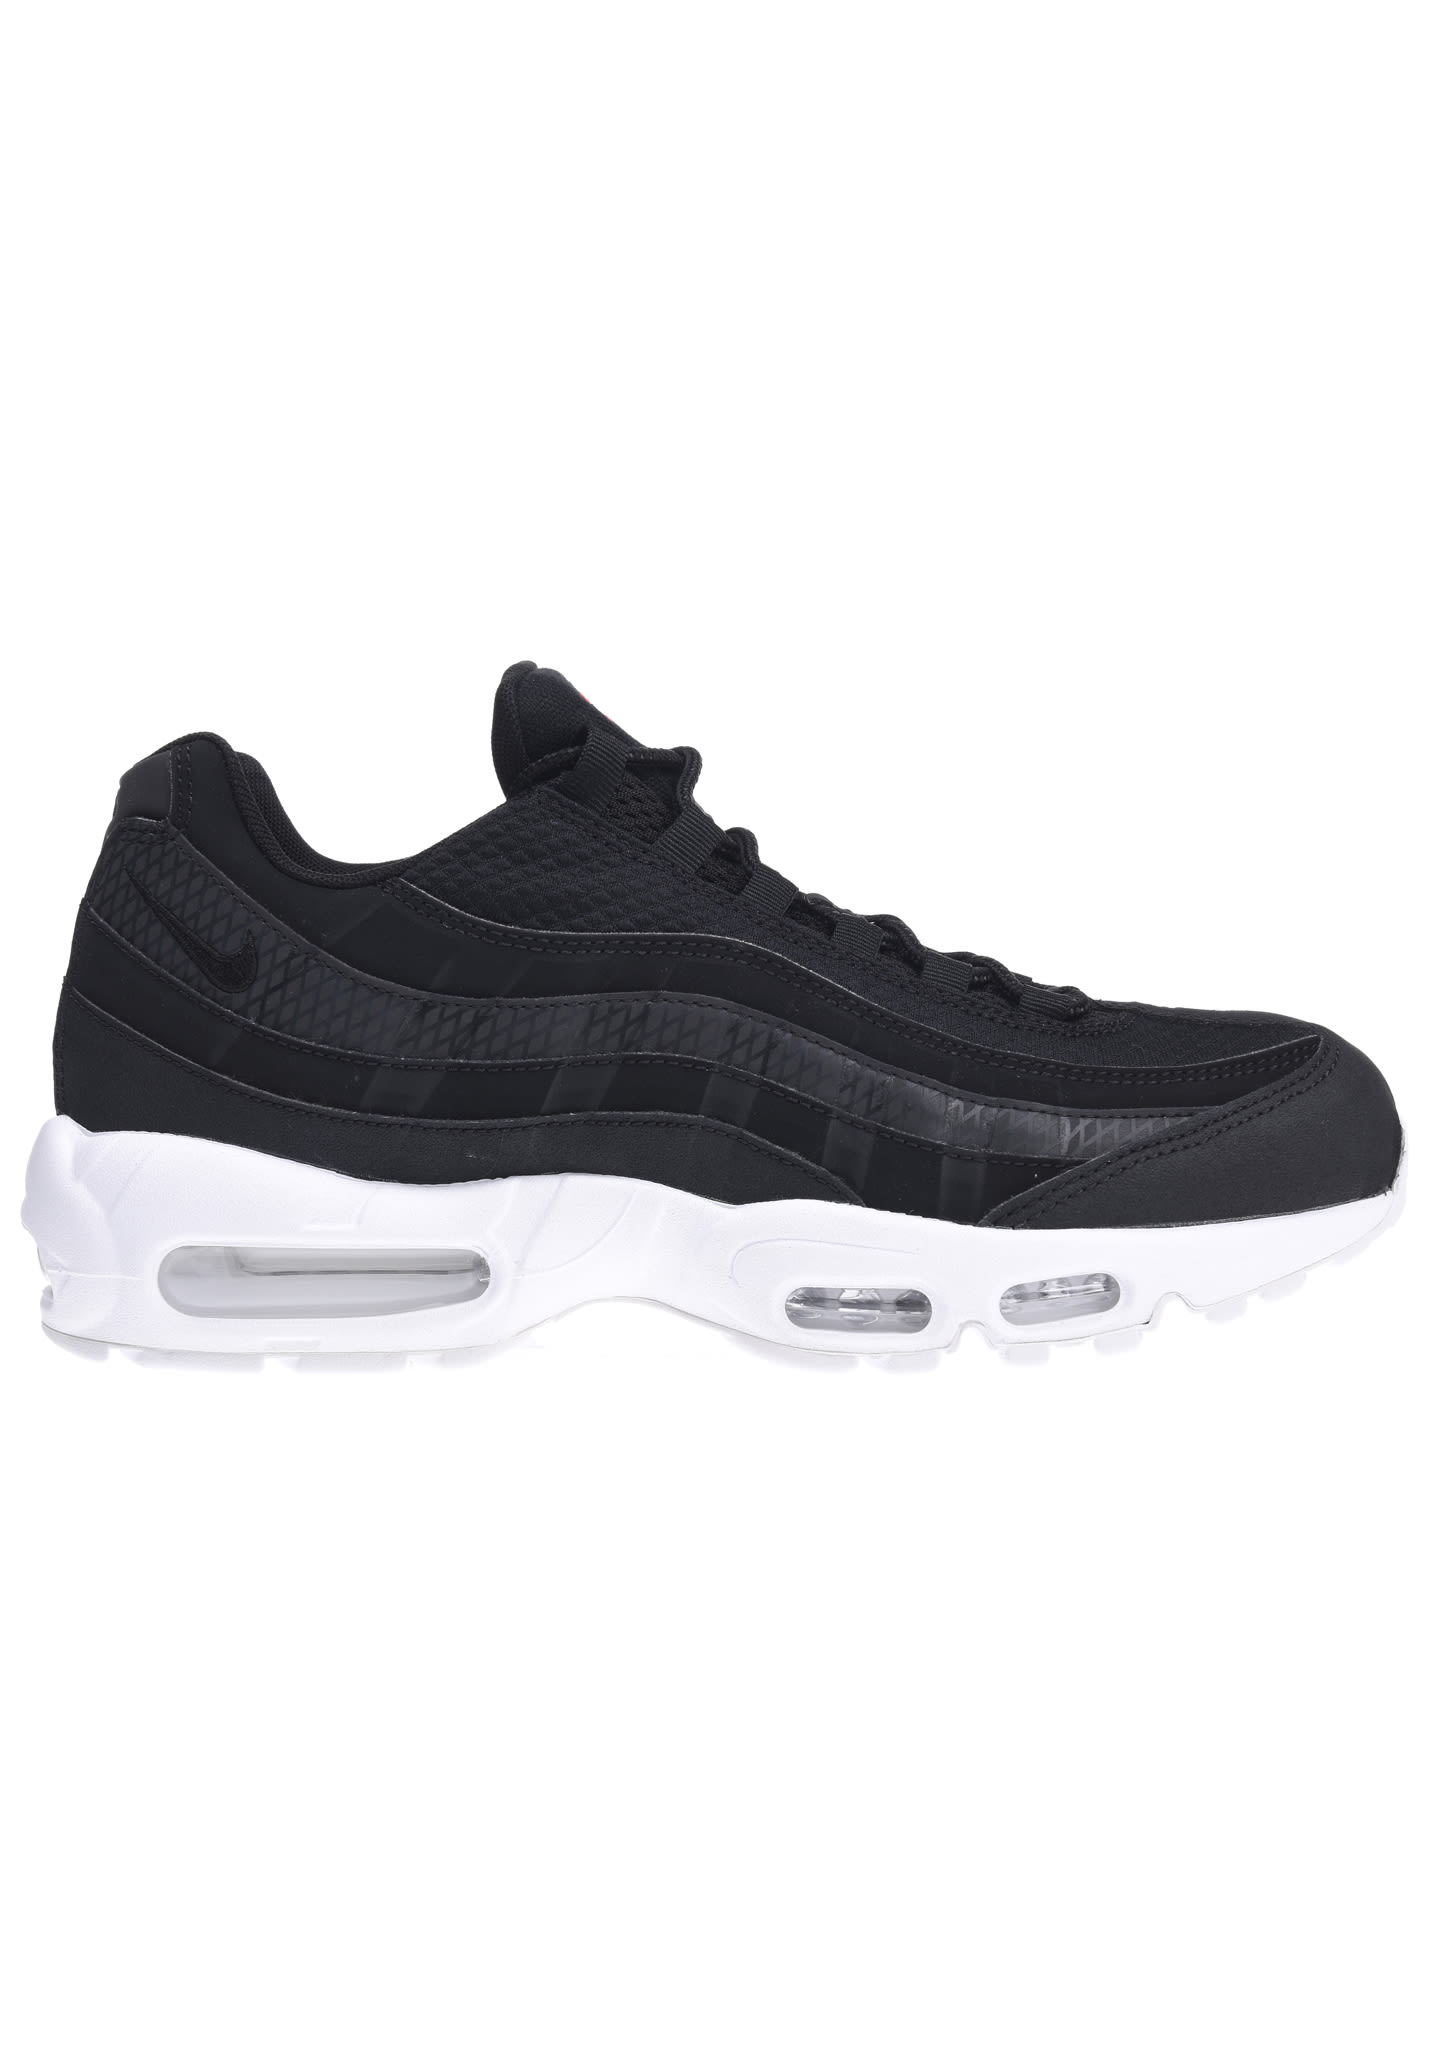 huge selection of 543f7 57fcb NIKE SPORTSWEAR Air Max 95 Premium SE - Sneakers for Men - Black - Planet  Sports